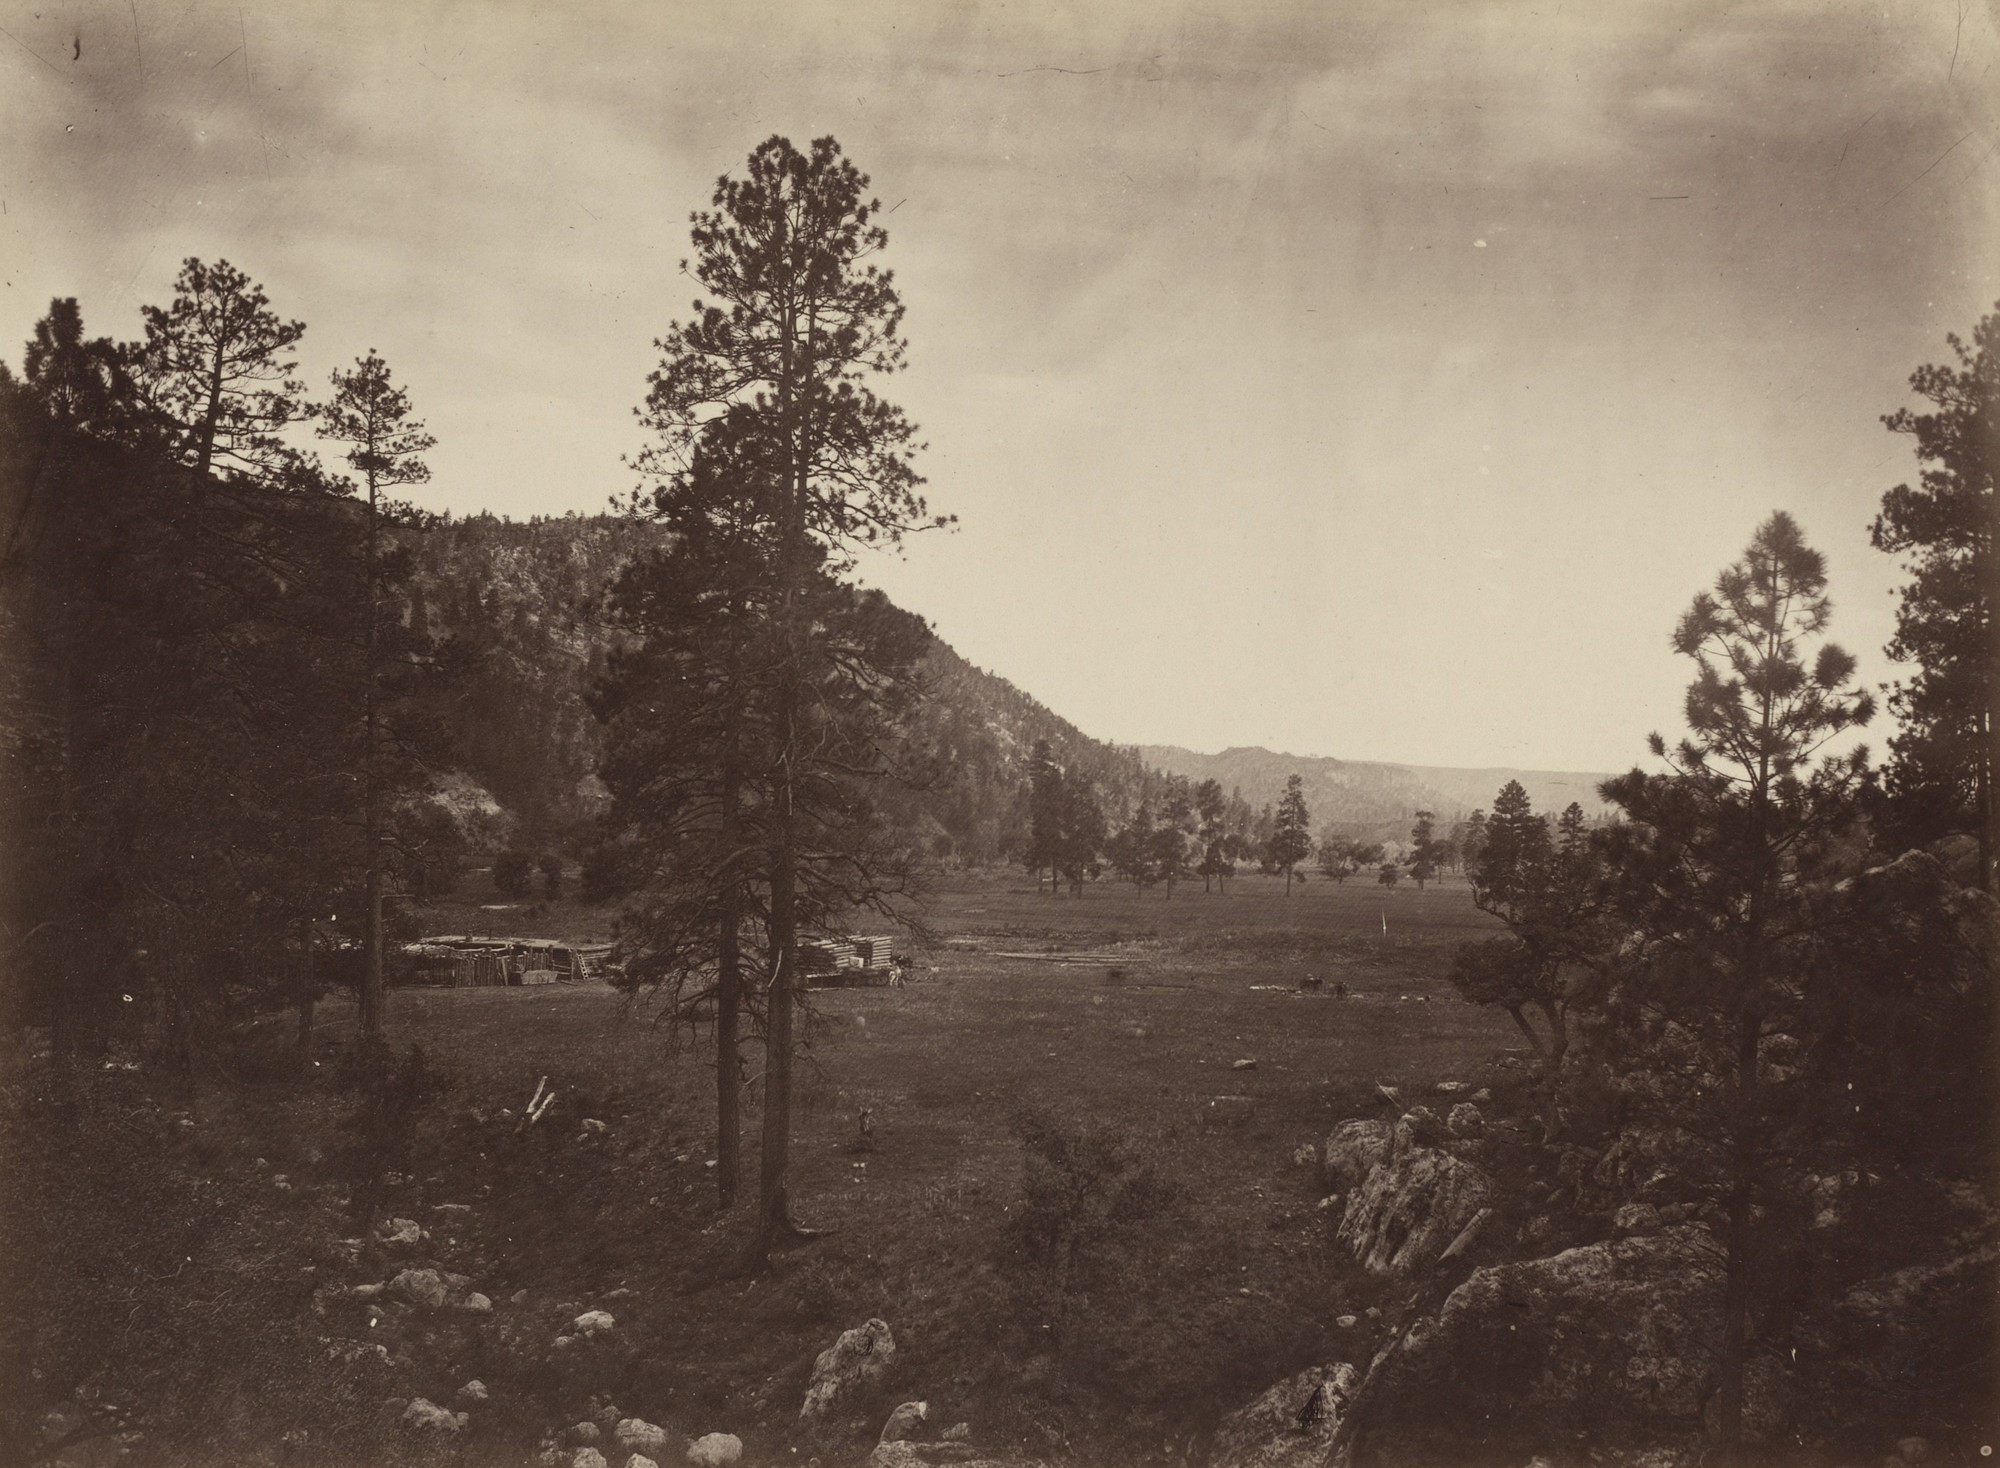 Timothy O'Sullivan. Cooley's Park, Sierra Blanca Range, Arizona. Seasons of 1871, 1872 and 1873